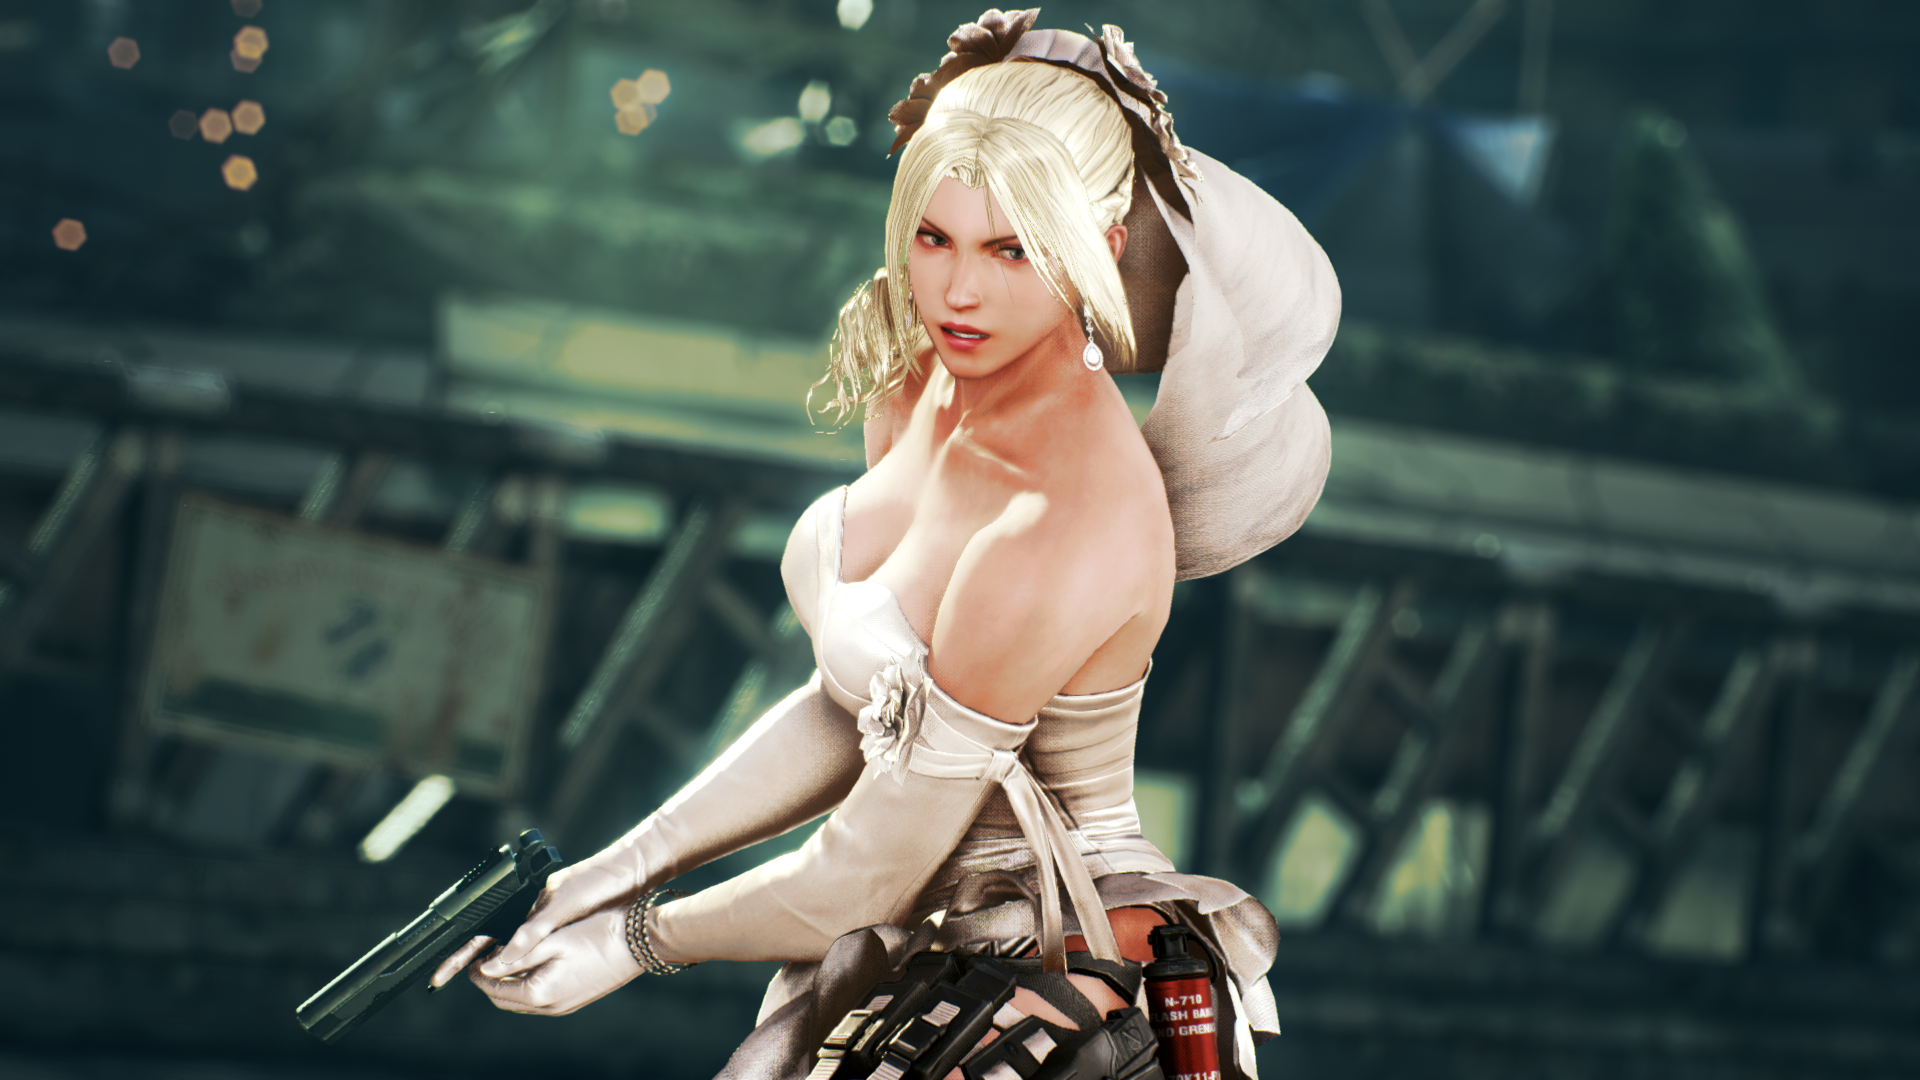 tekken 7 nina williams featured - Tổng hợp 7 trailer game hot nhất trên Xbox One trong tuần {8.3.2017}